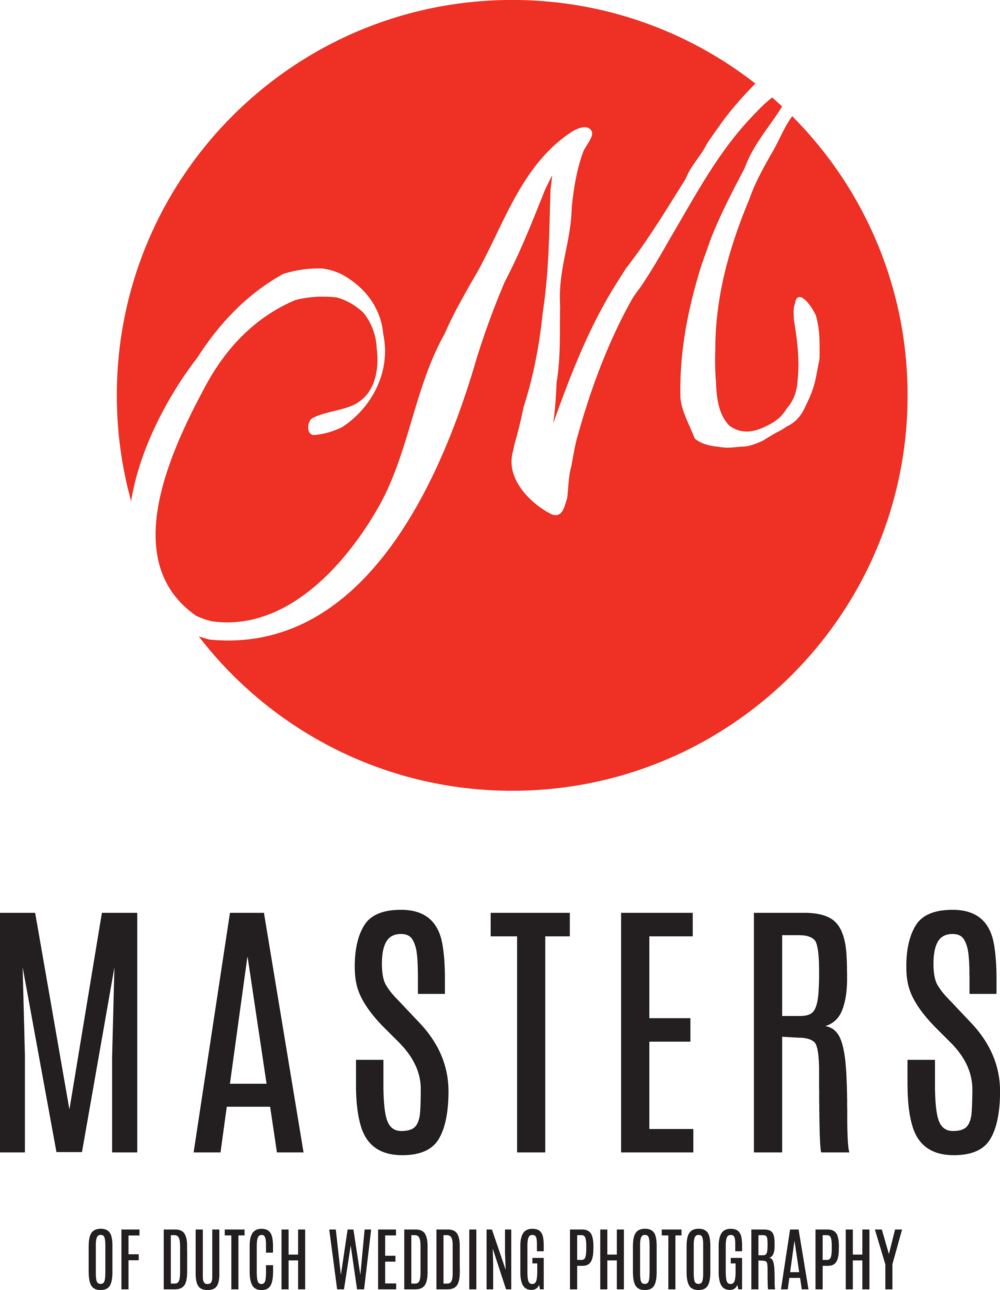 De-masters-of-dutch-wedding-photography-logo.png